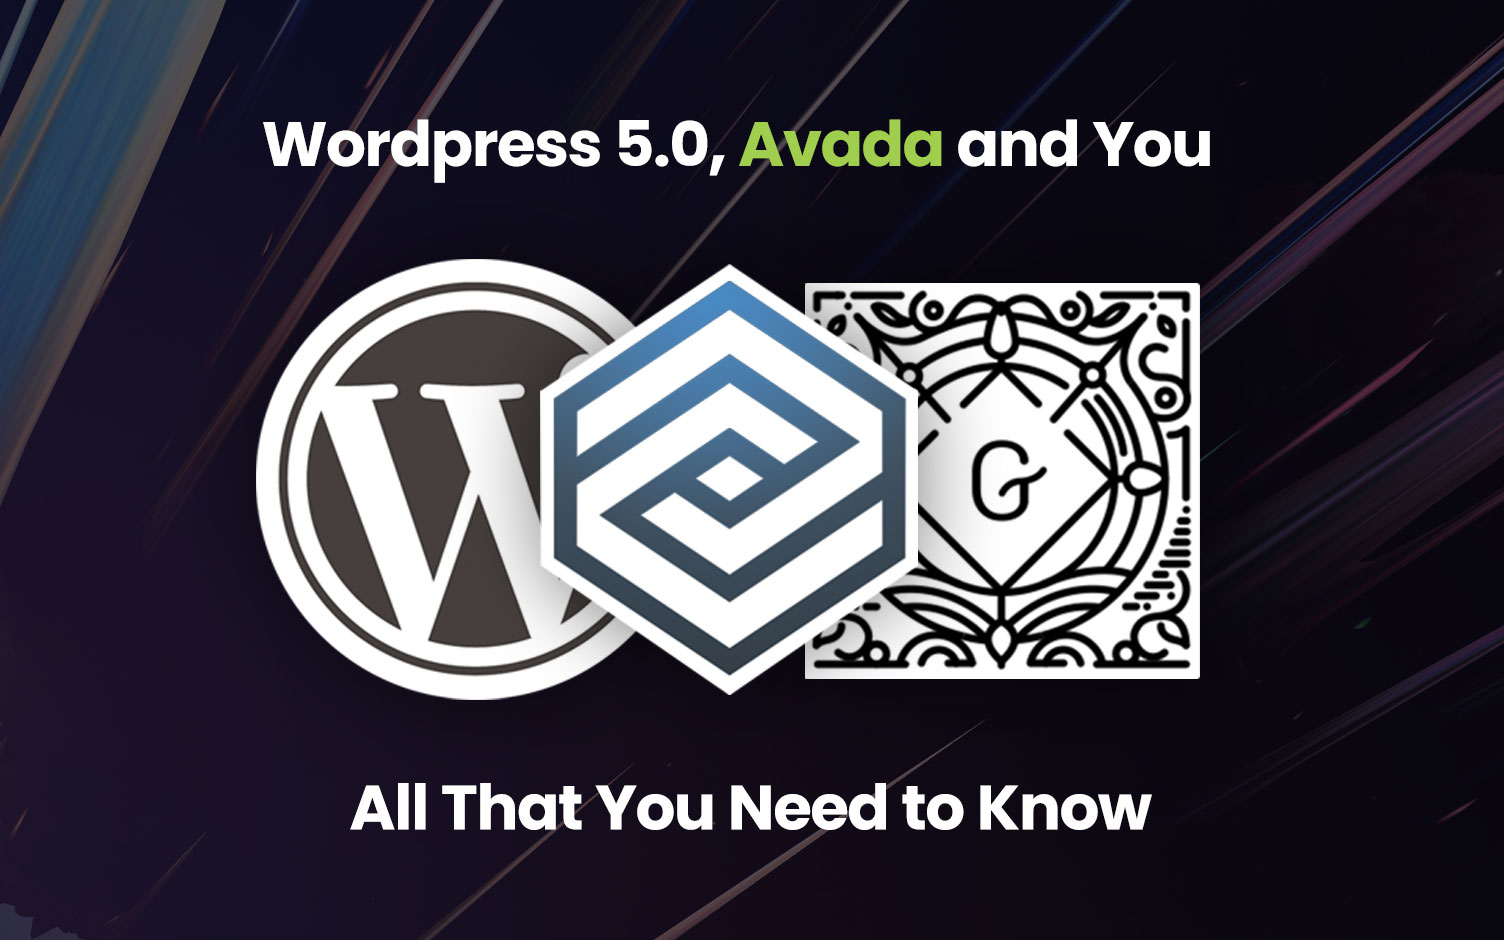 Theme Nouvel An Wordpress 5 Avada And You All That You Need To Know